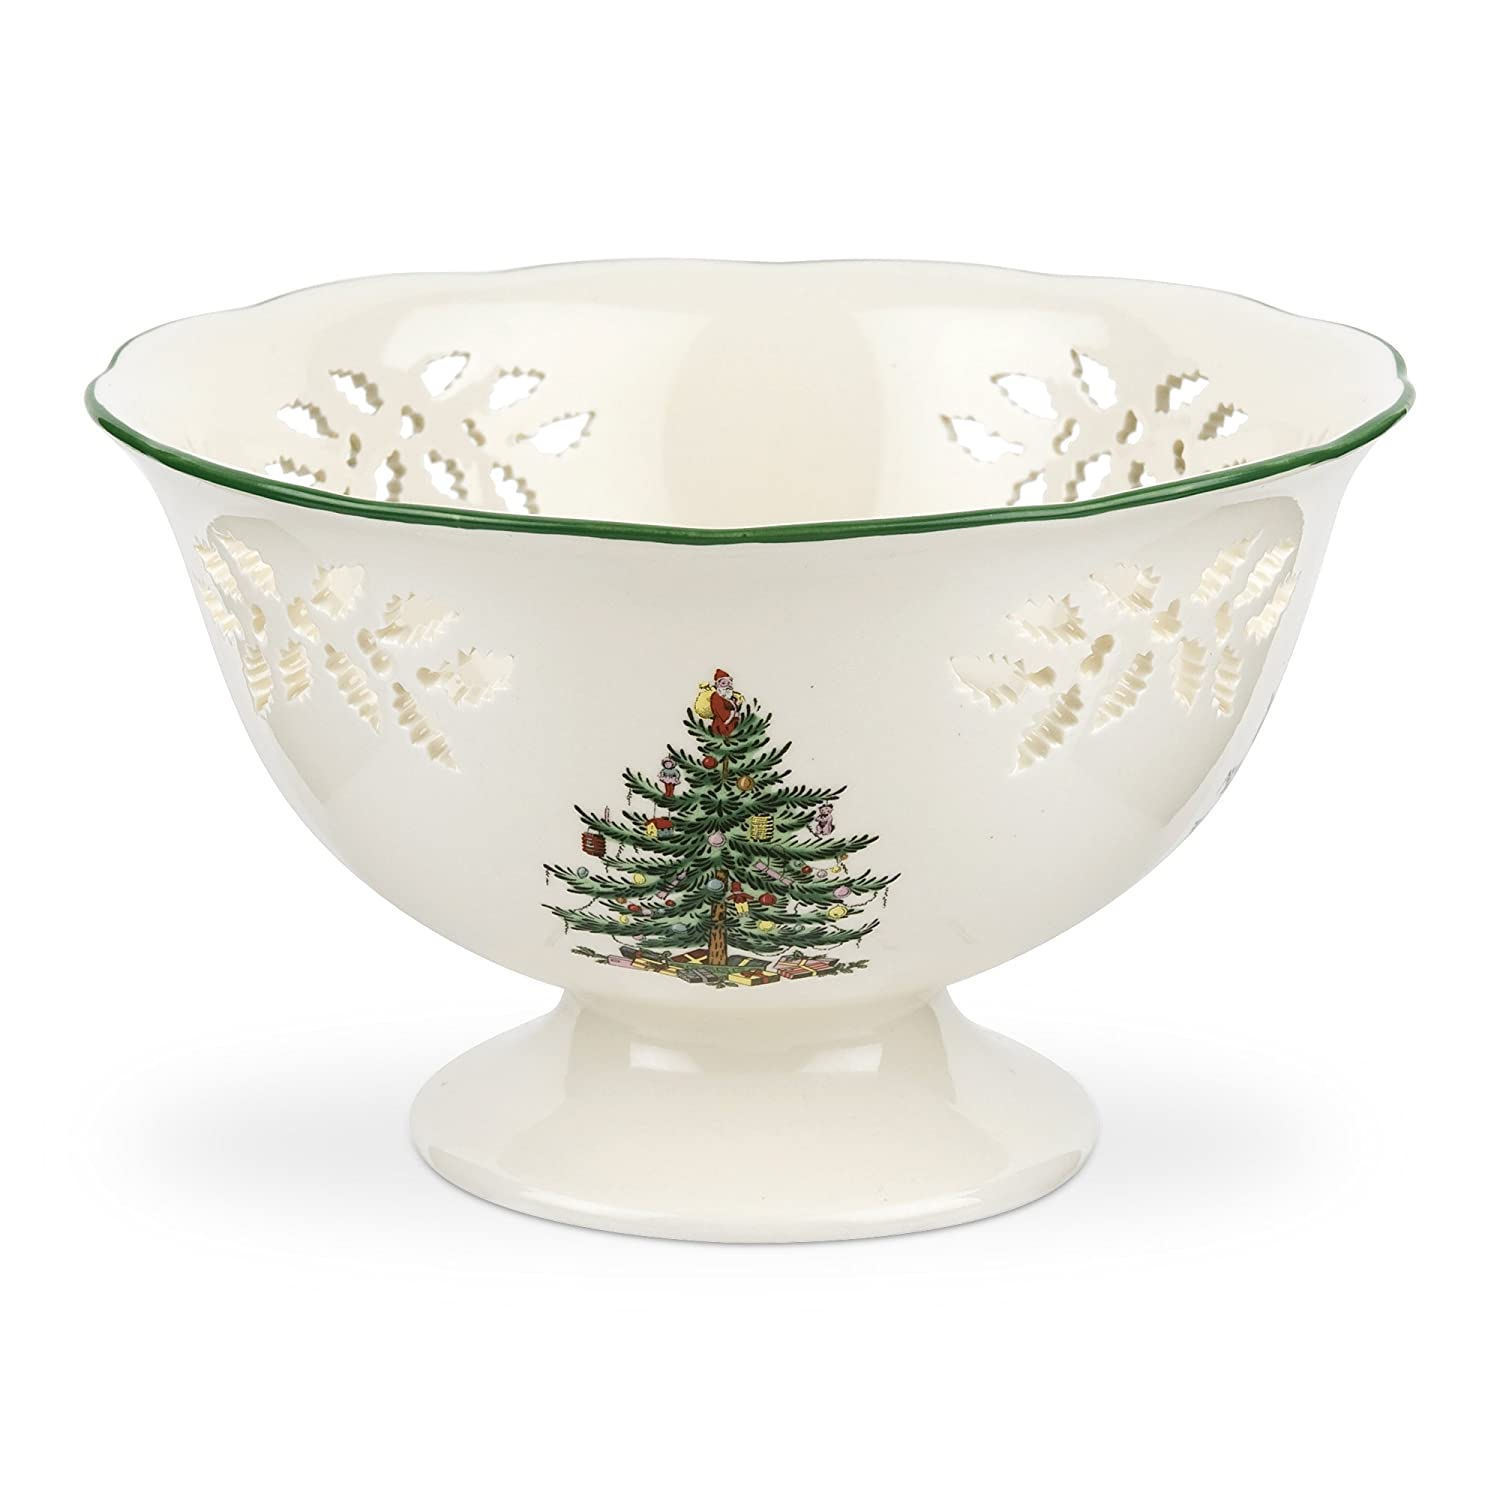 Spode Christmas Tree Pierced Footed Compote 1497788